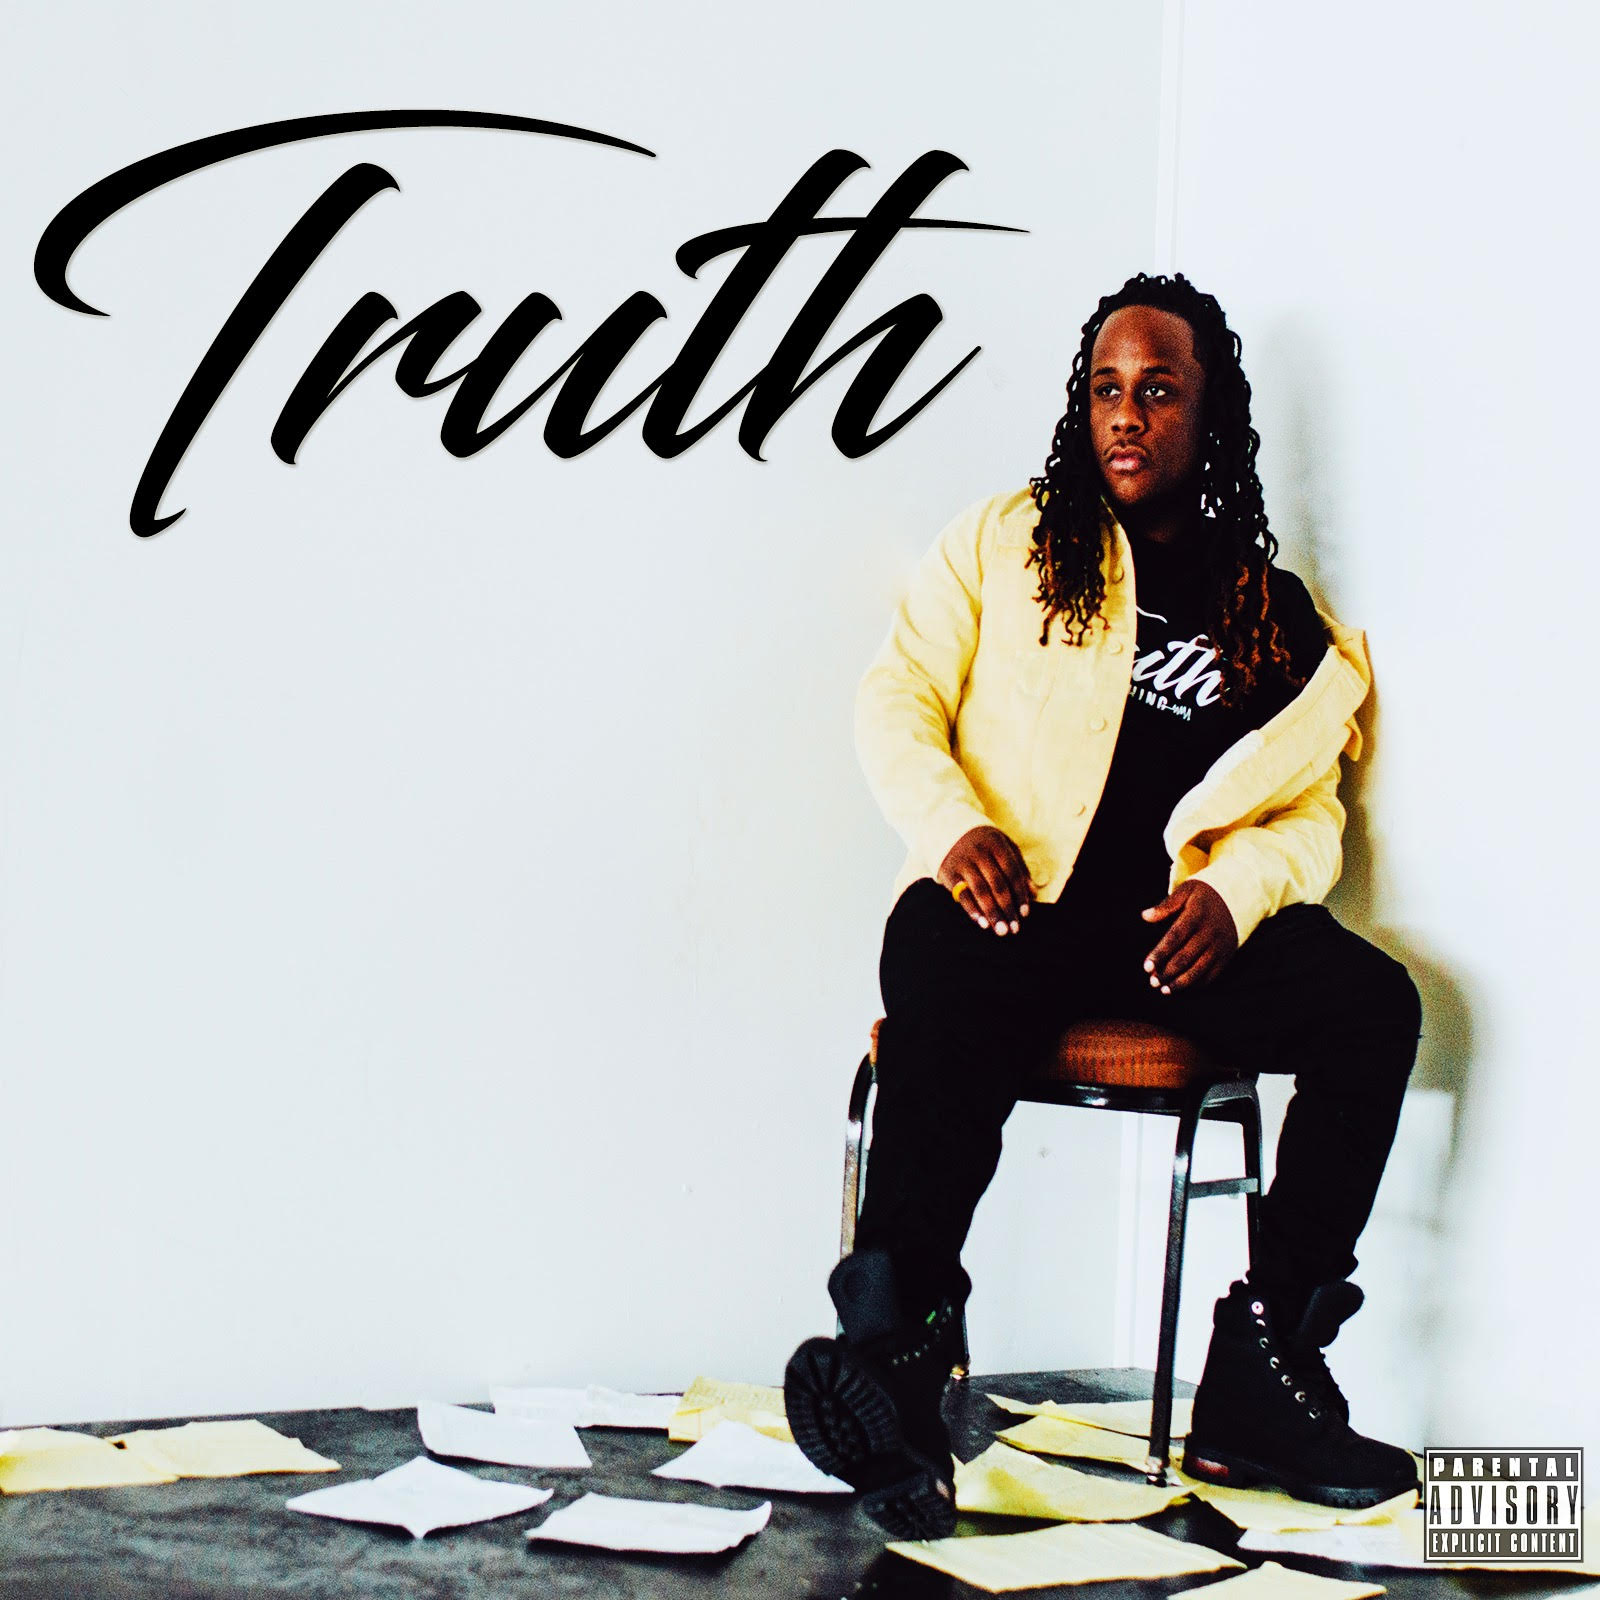 Jooby Truth - stereotypeco